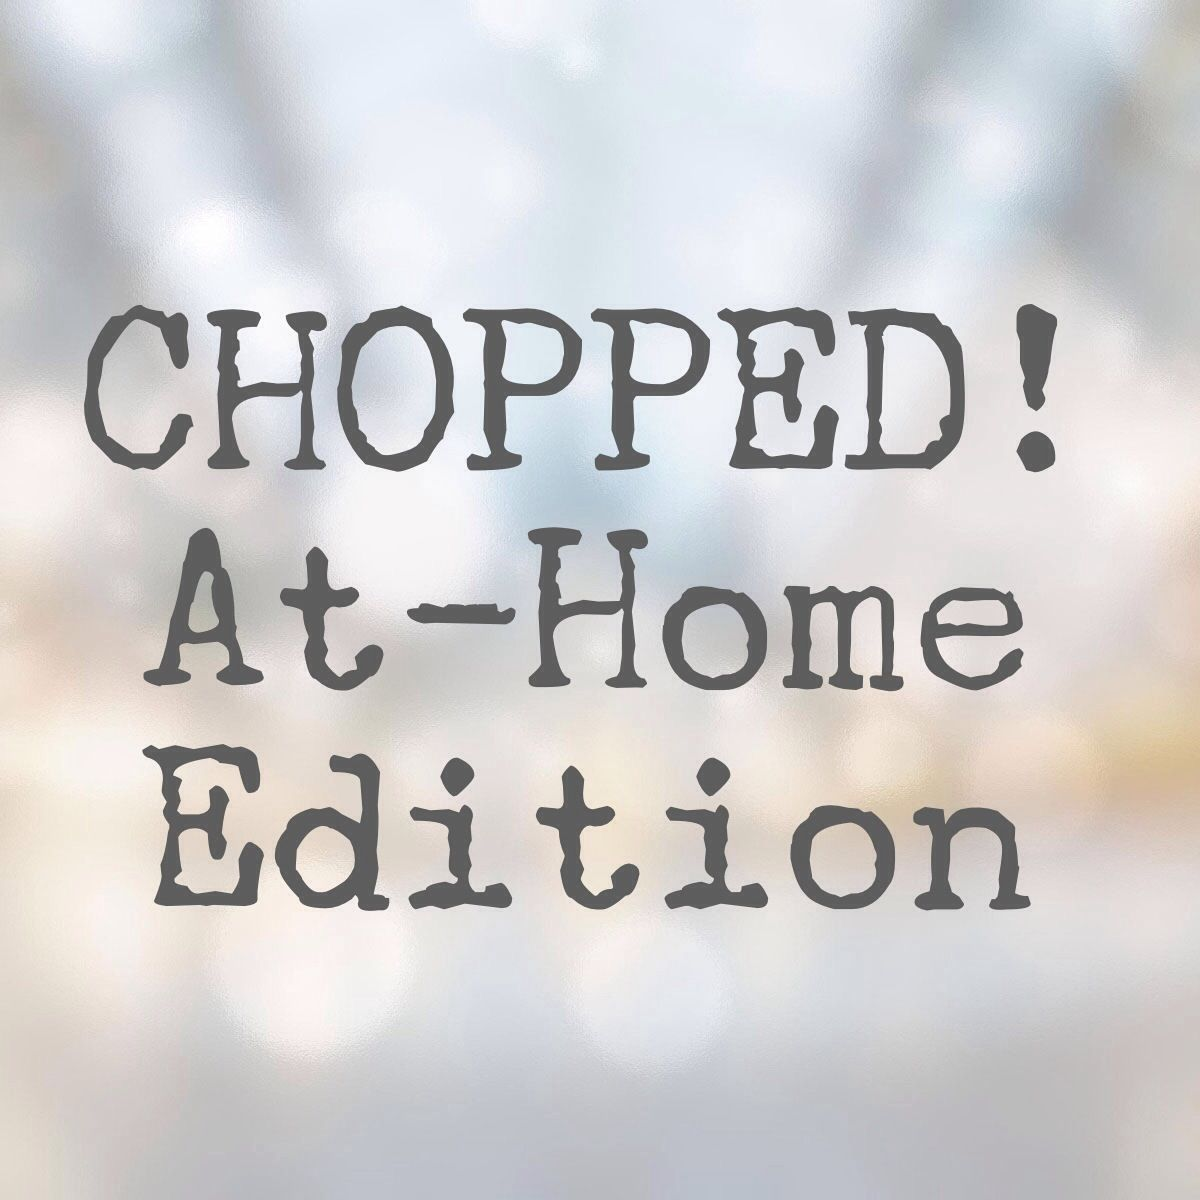 CHOPPED! At-Home Edition | Blog, Girls and Birthdays